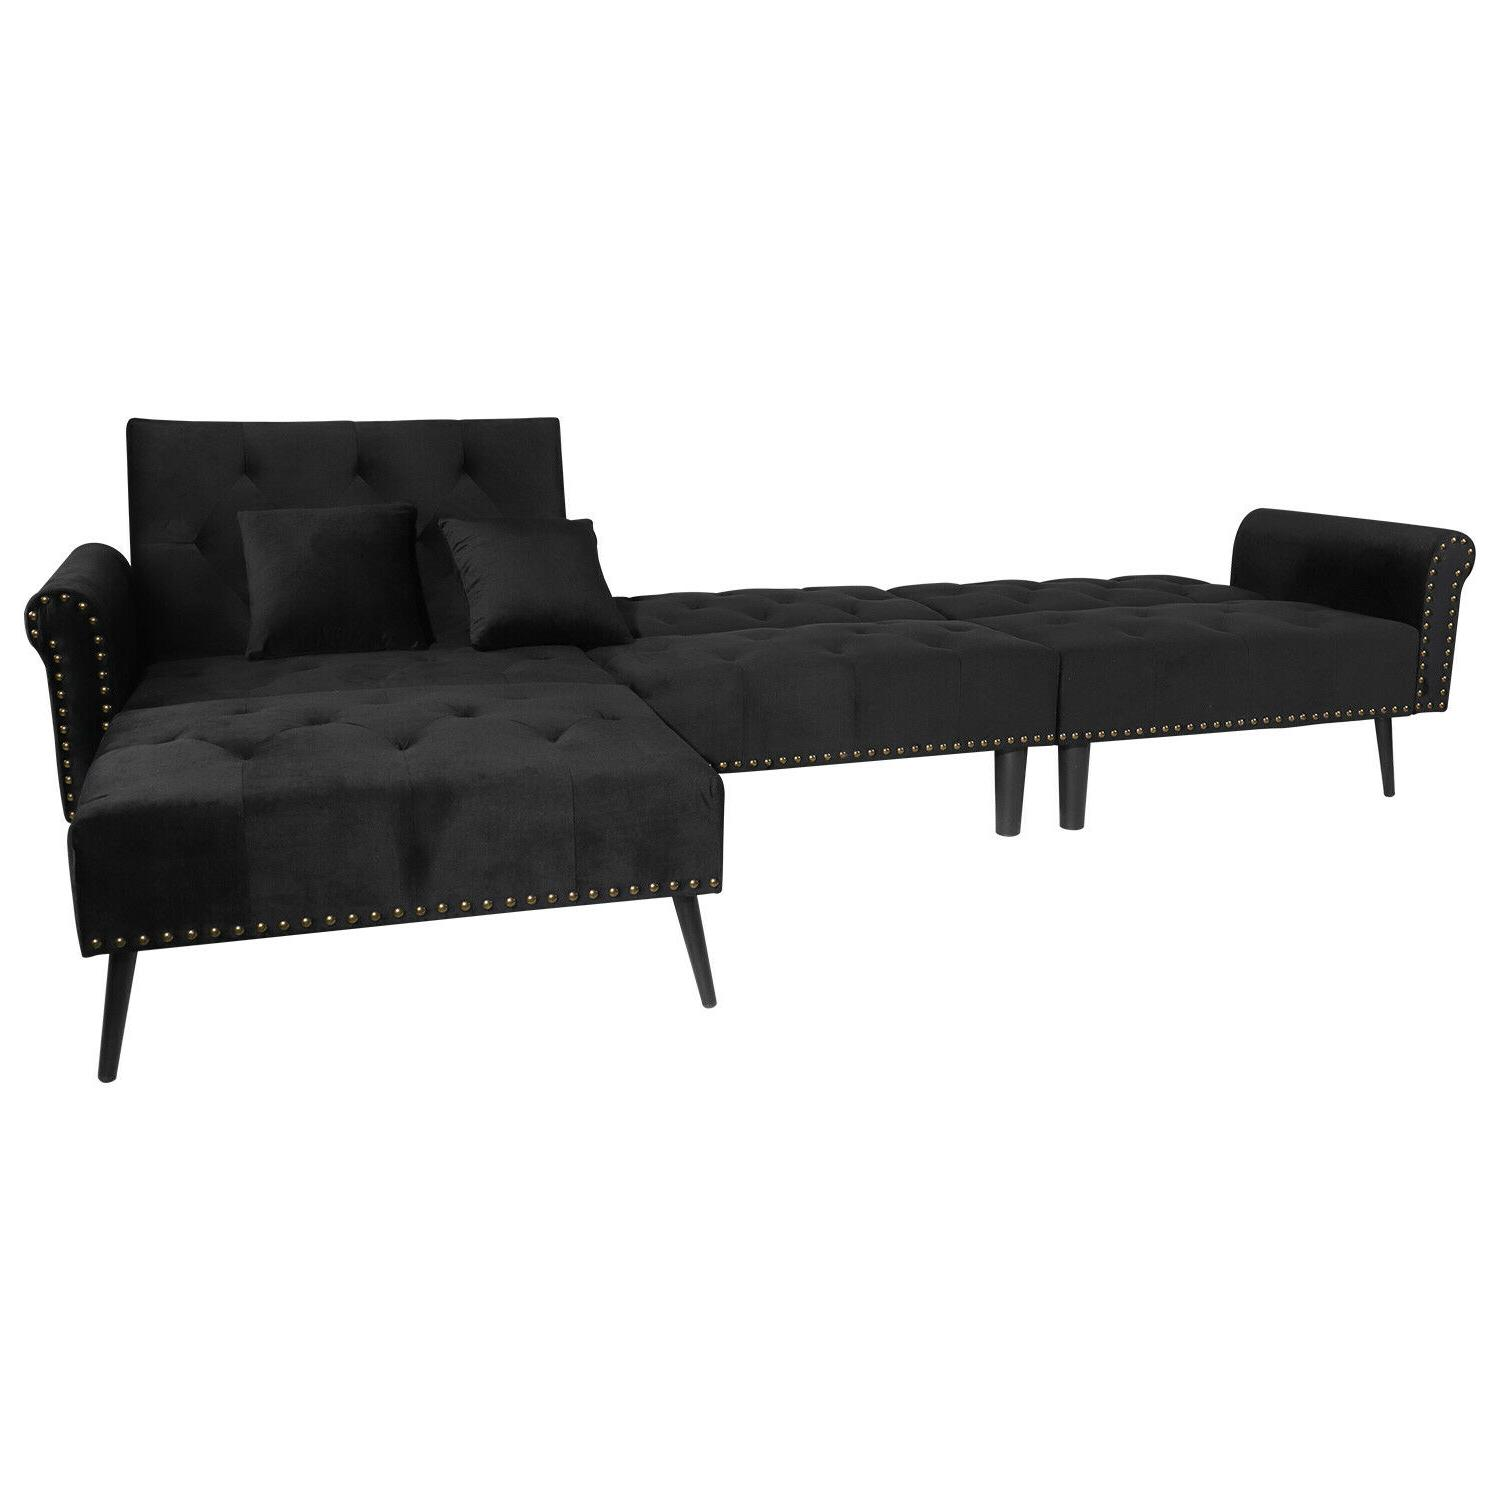 Sectional Sofa Sleeper Bed 900lb 115in Wide Futon Sofa Button Tufted